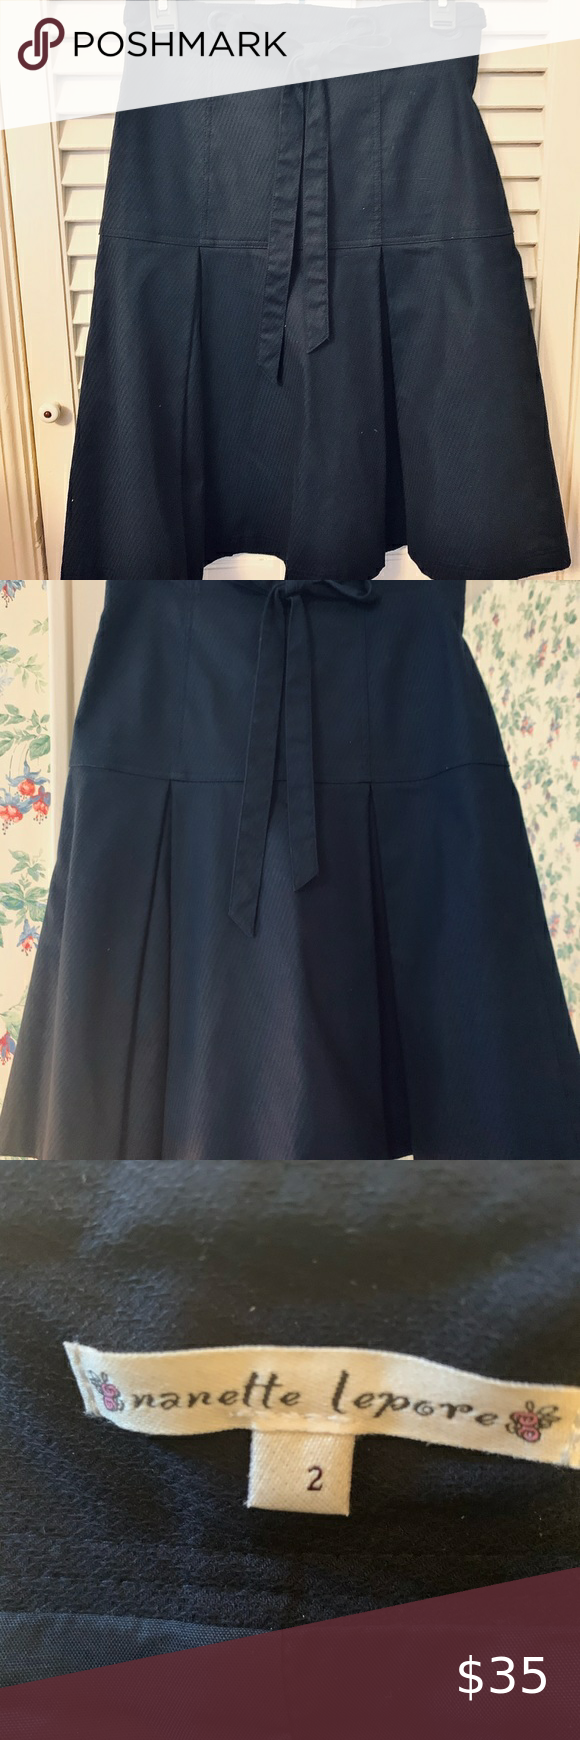 Nanette Lepore Navy Skirt In 2020 Navy Skirt Clothes Design Outfits